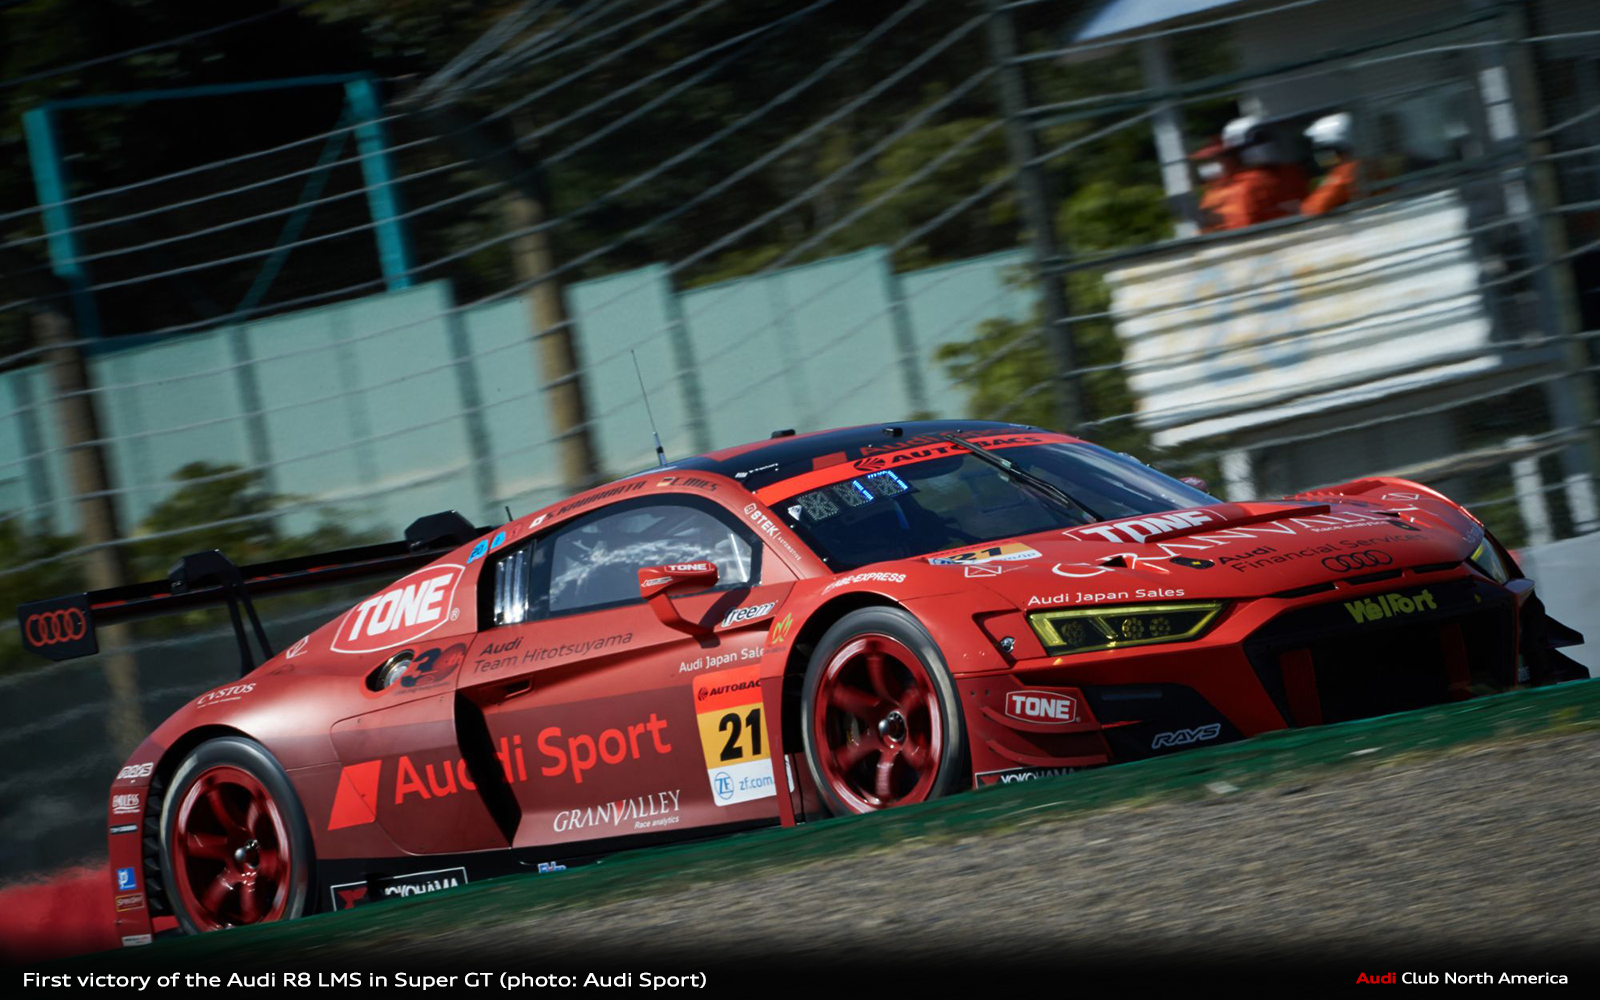 First Victory of the Audi R8 LMS in Super GT